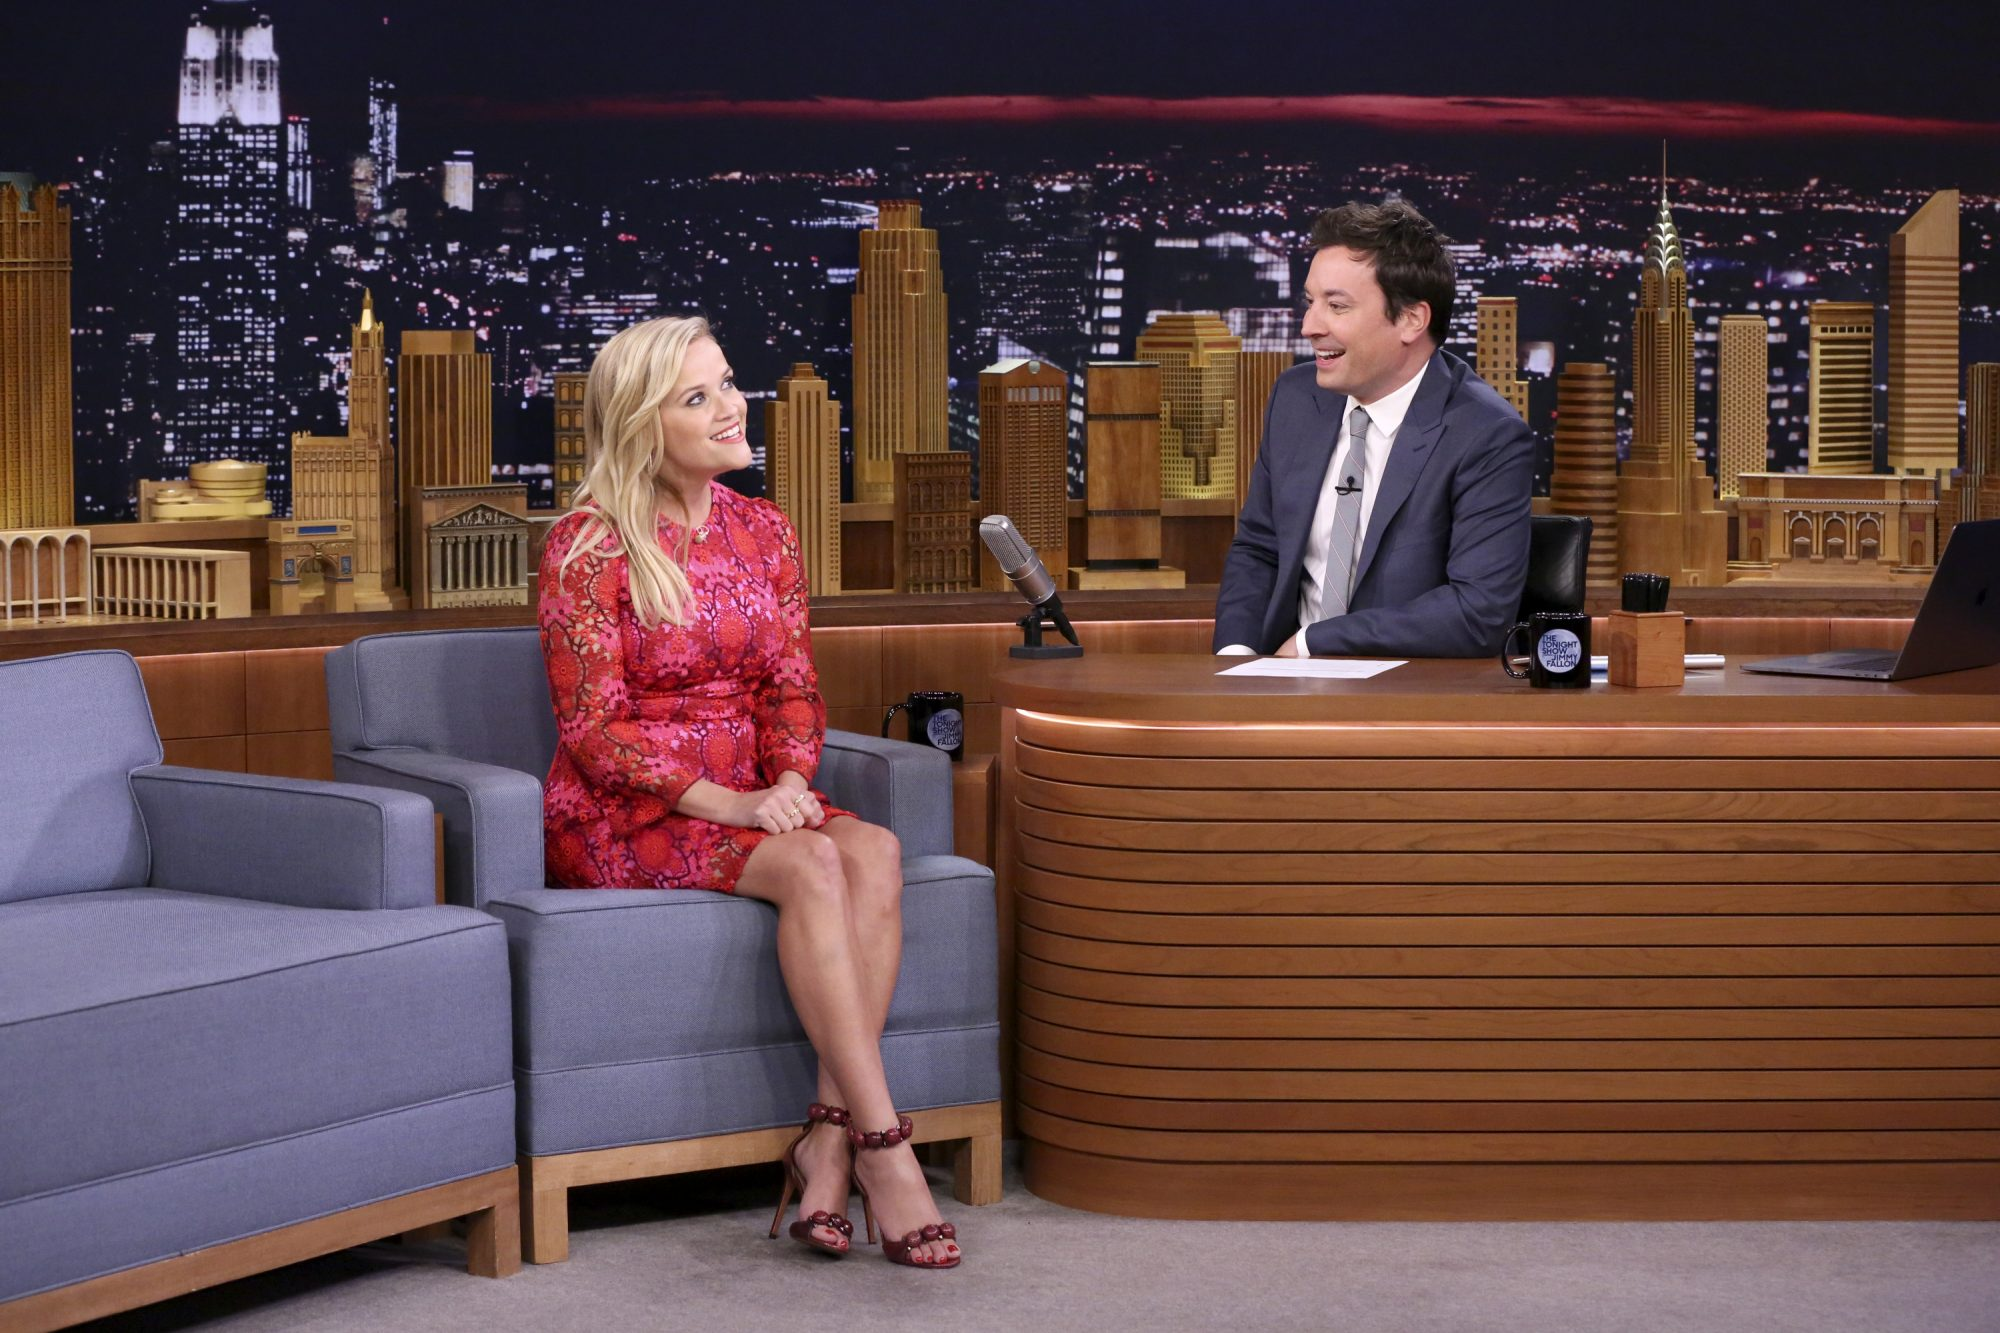 Reese Witherspoon on Jimmy Fallon 2017